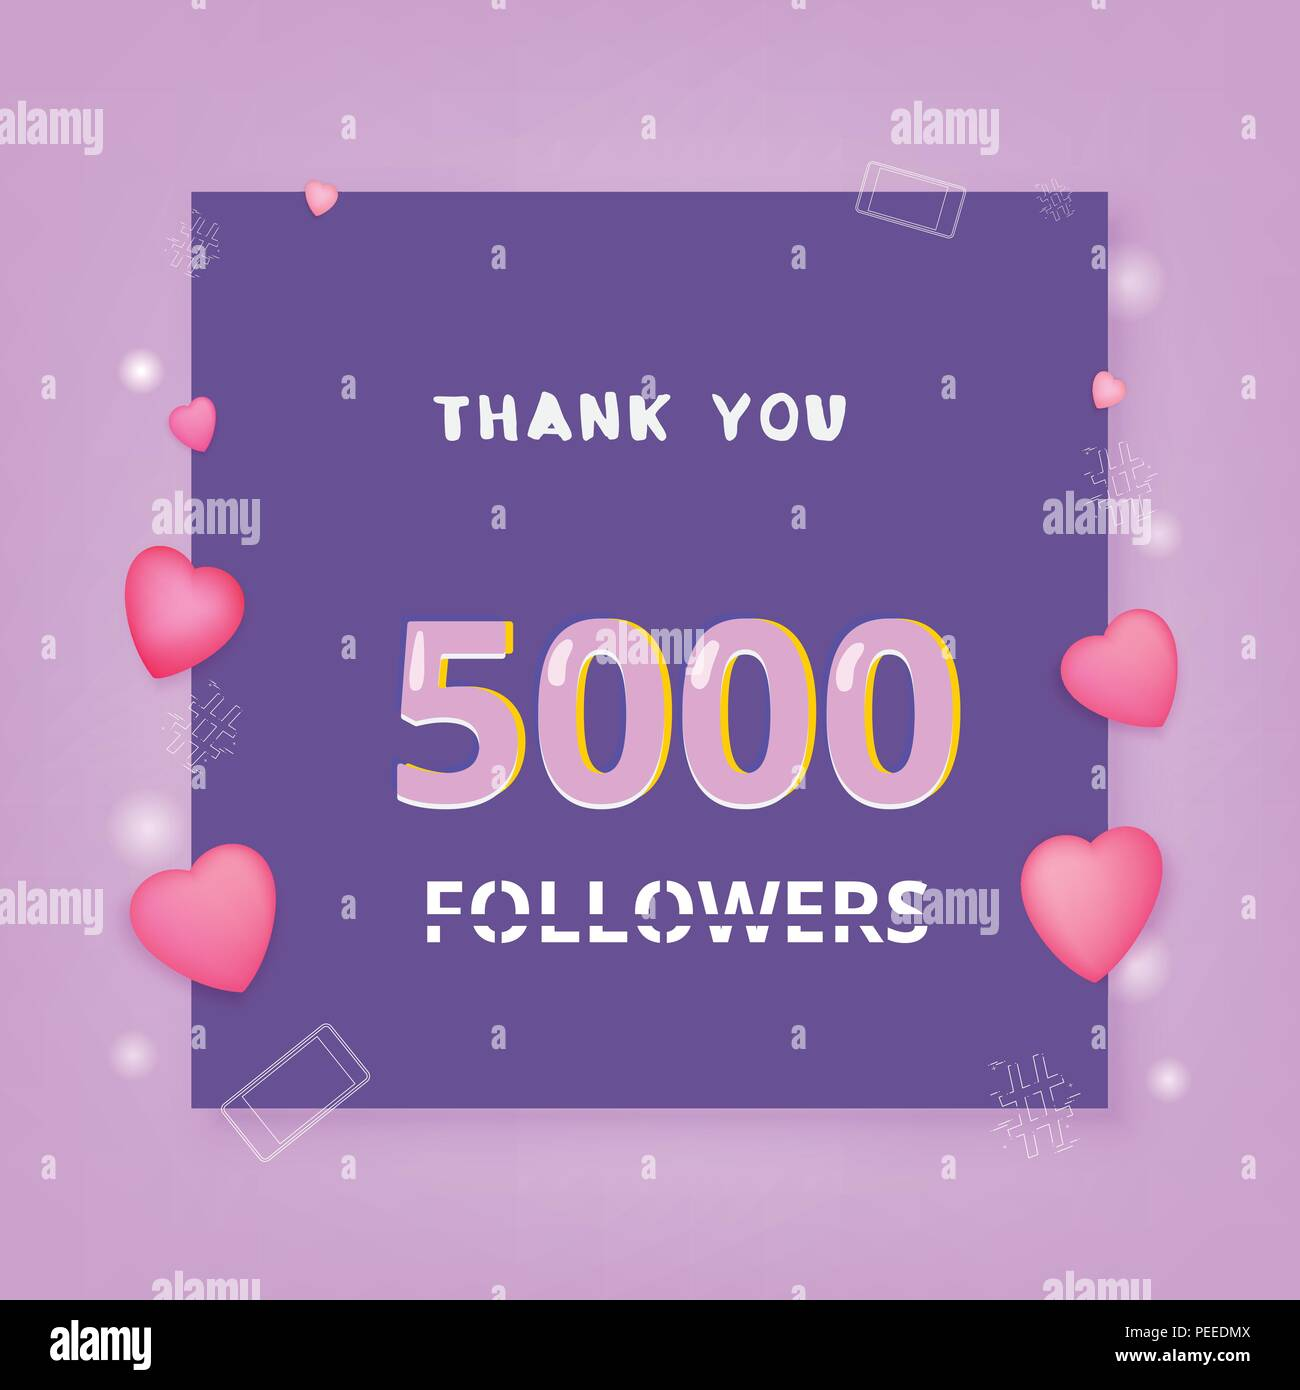 5000 followers thank you banner with frame and hearts template for